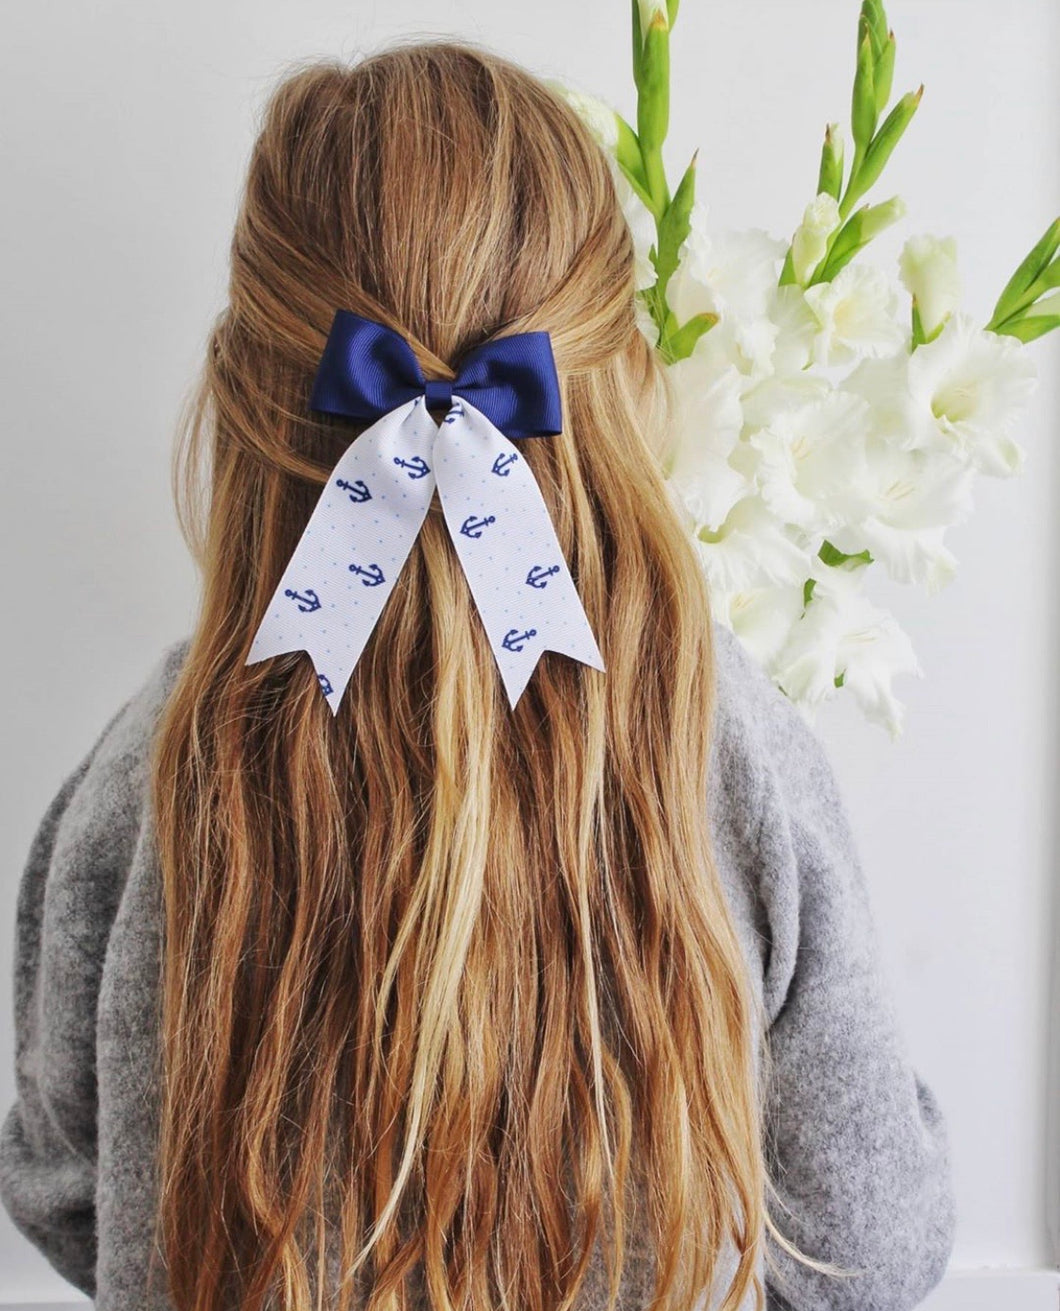 Anchor ponytail bow